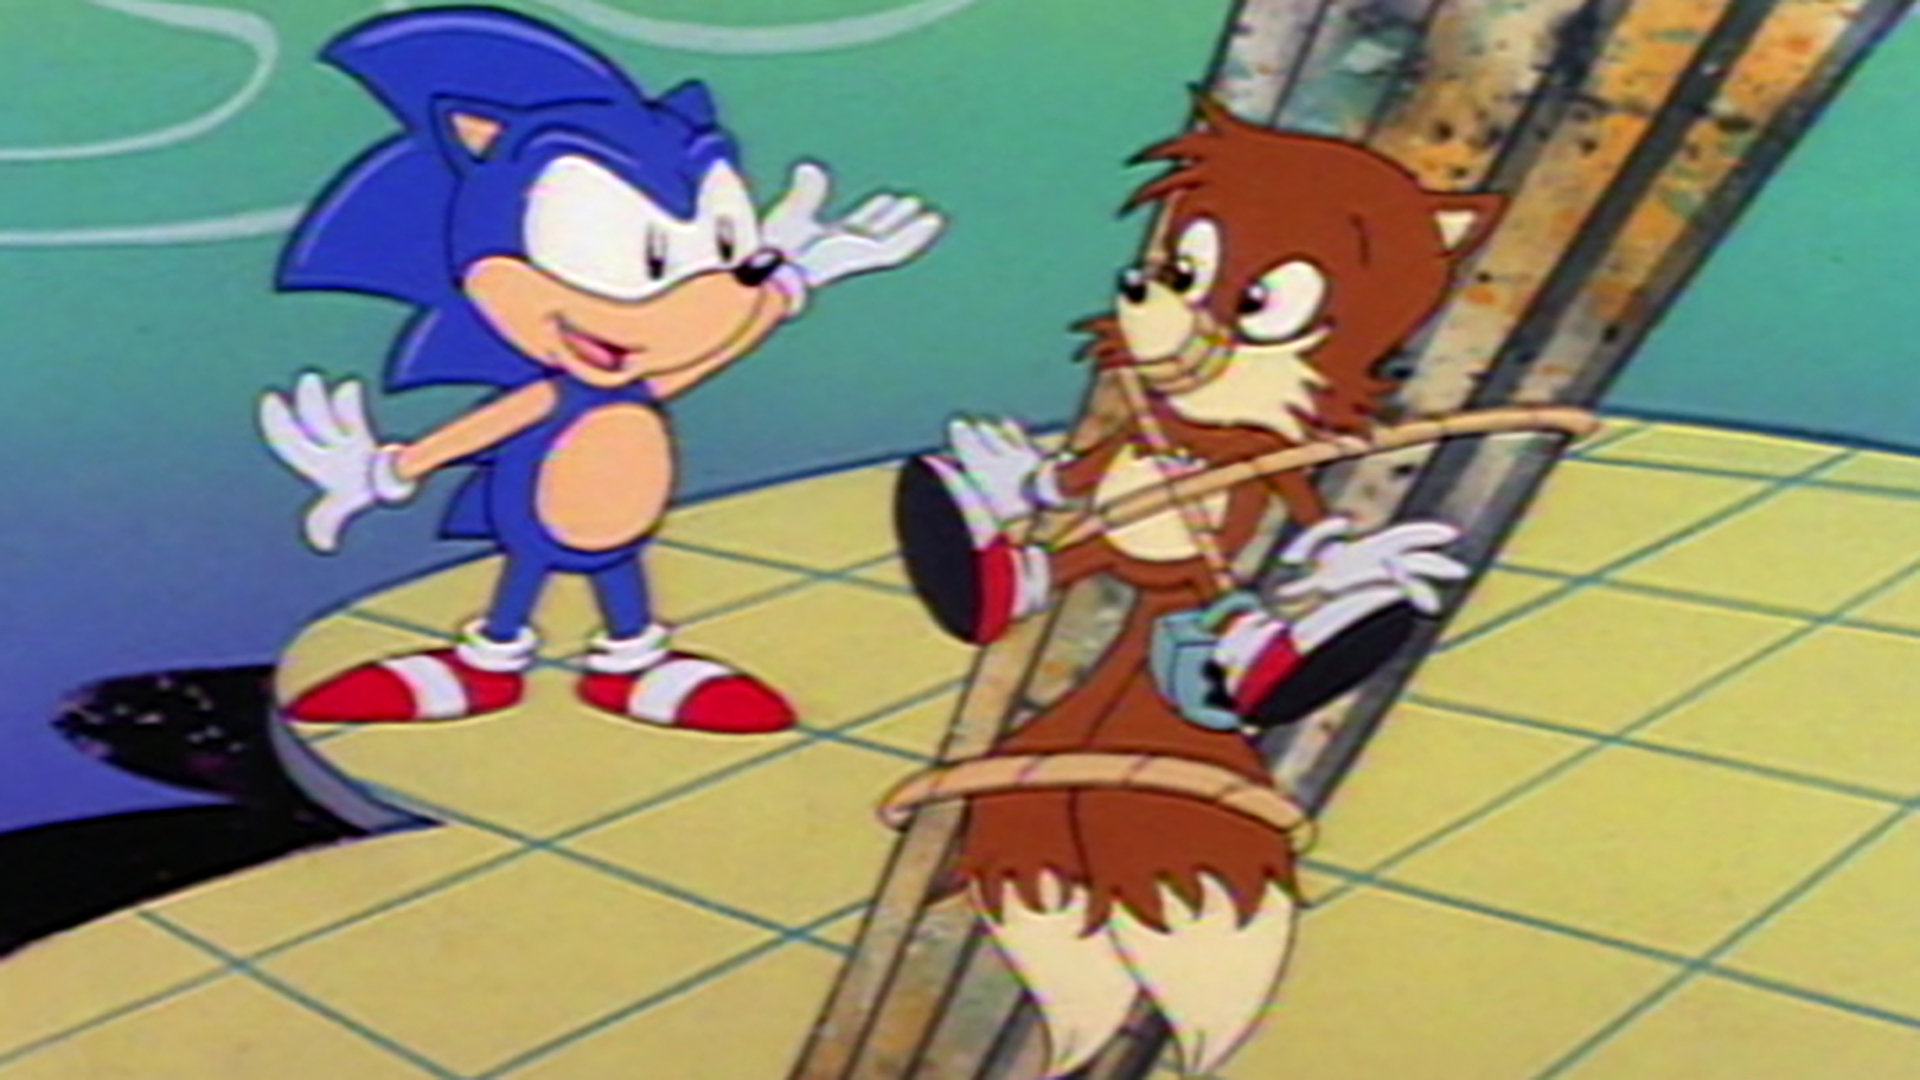 Watch Adventures Of Sonic The Hedgehog Season 1 Episode 20 Trail Of The Missing Tails Full Show On Cbs All Access